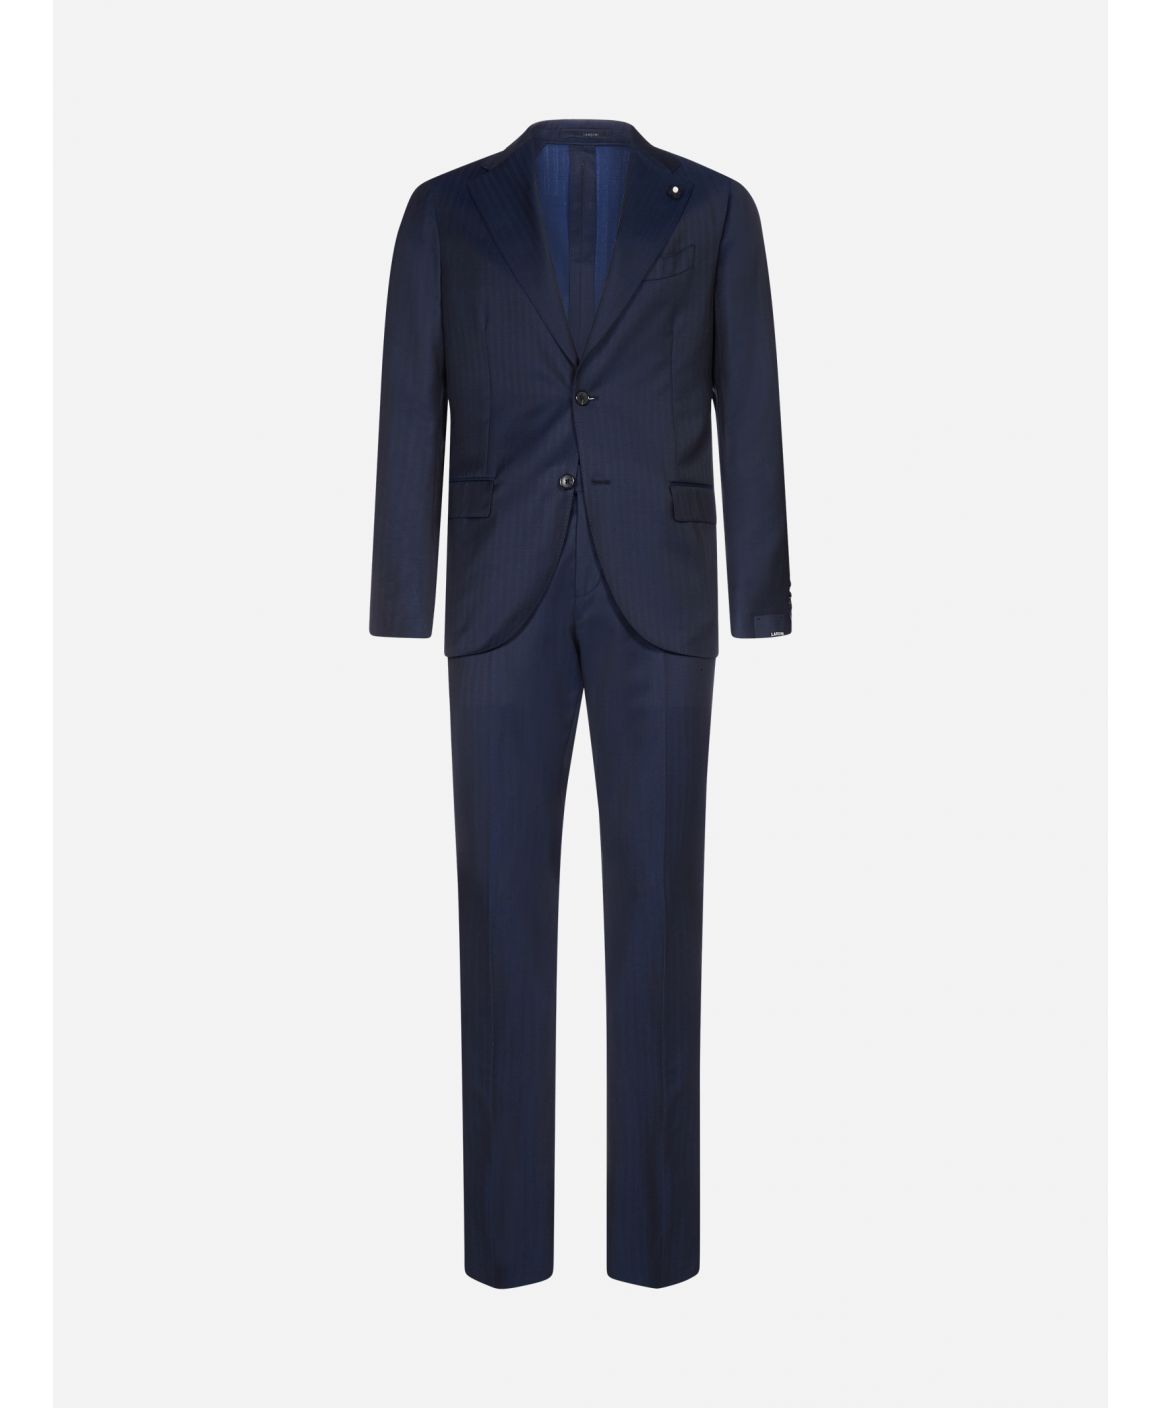 2-pieces wool suit